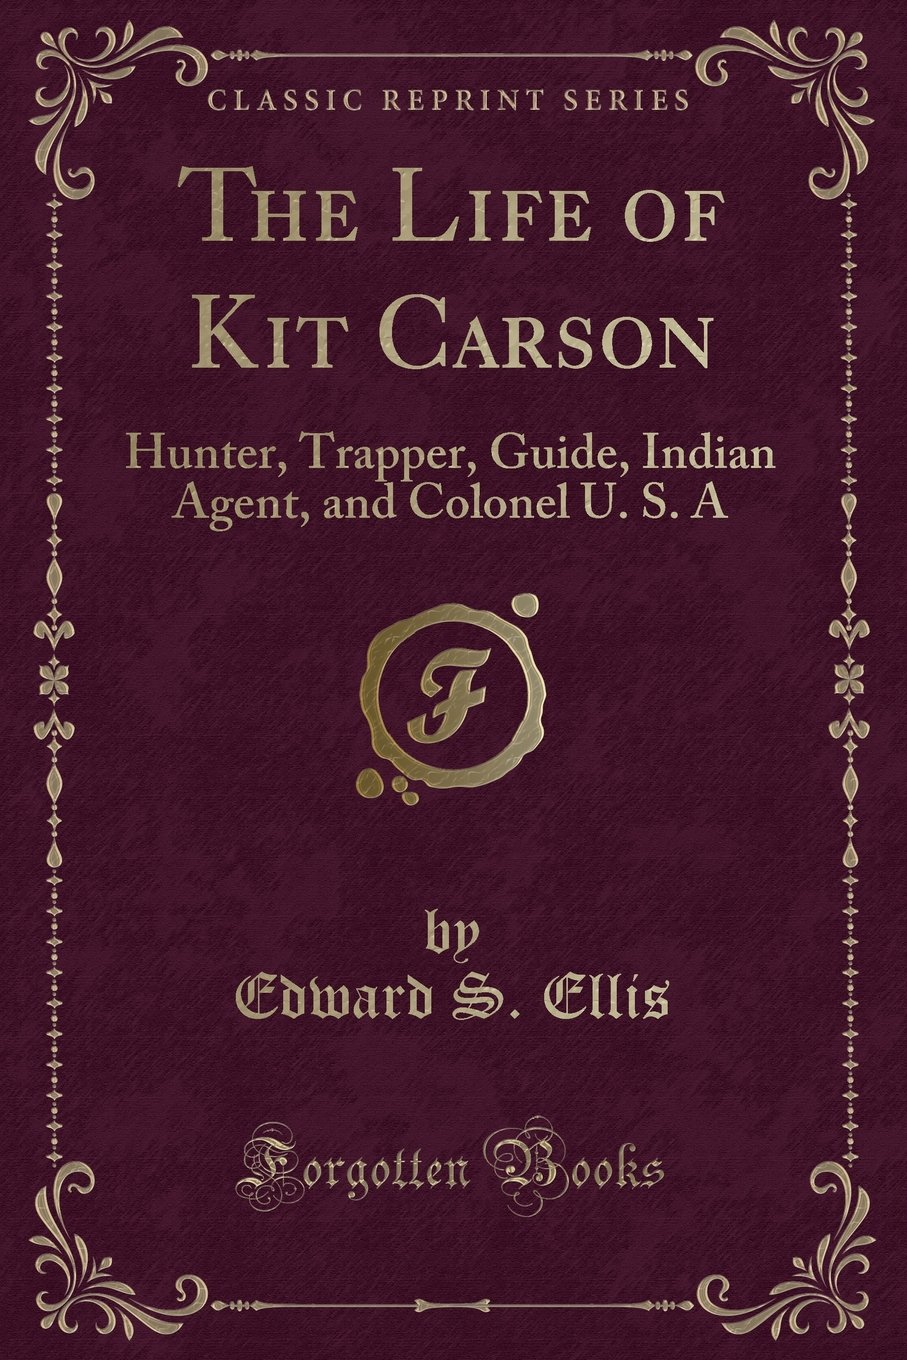 Amazon.com: The Life of Kit Carson: Hunter, Trapper, Guide, Indian Agent,  and Colonel U. S. A (Classic Reprint) (9781332020904): Edward S. Ellis:  Books